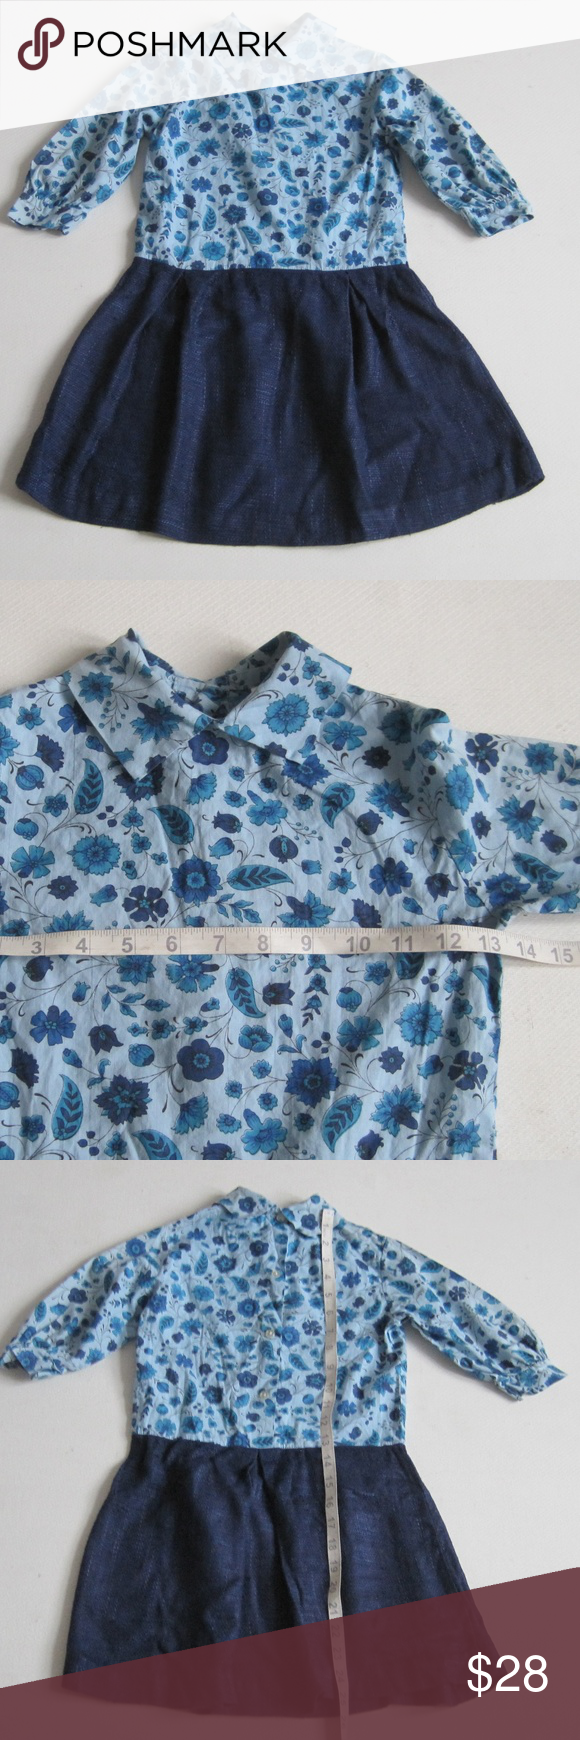 Vintage floral dress size 7 made in USA